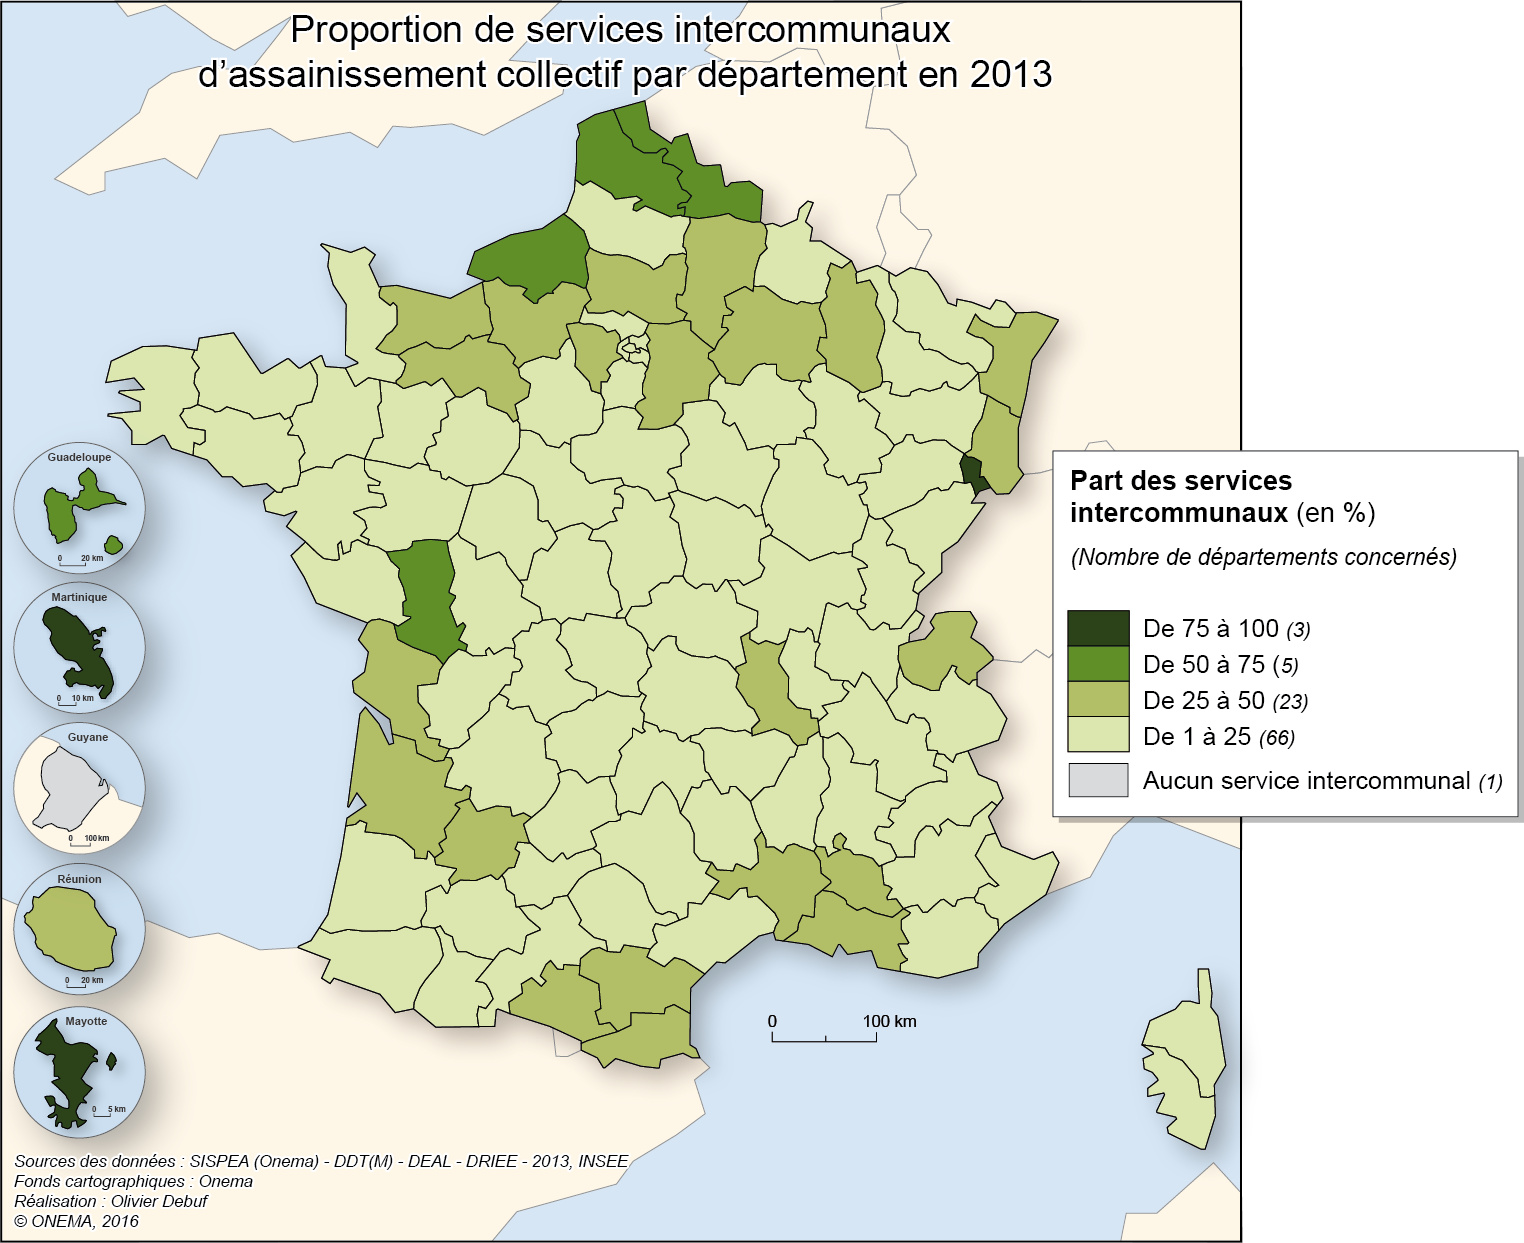 3)	Proportion de services intercommunaux d'assainissement collectif en 2013